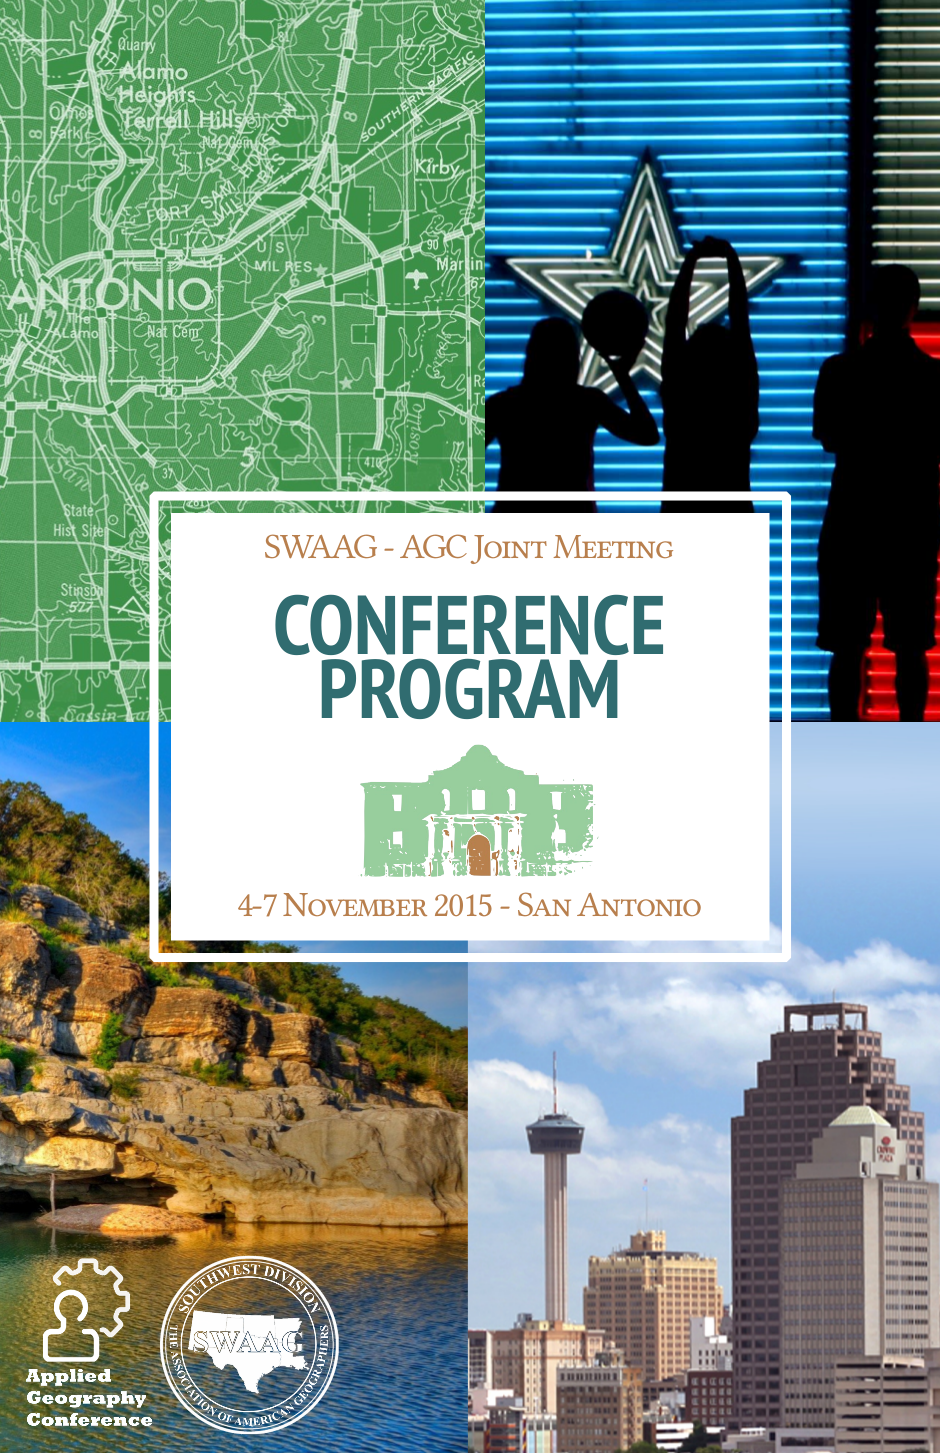 SWAAG/AGC 2015 conference program - Cover